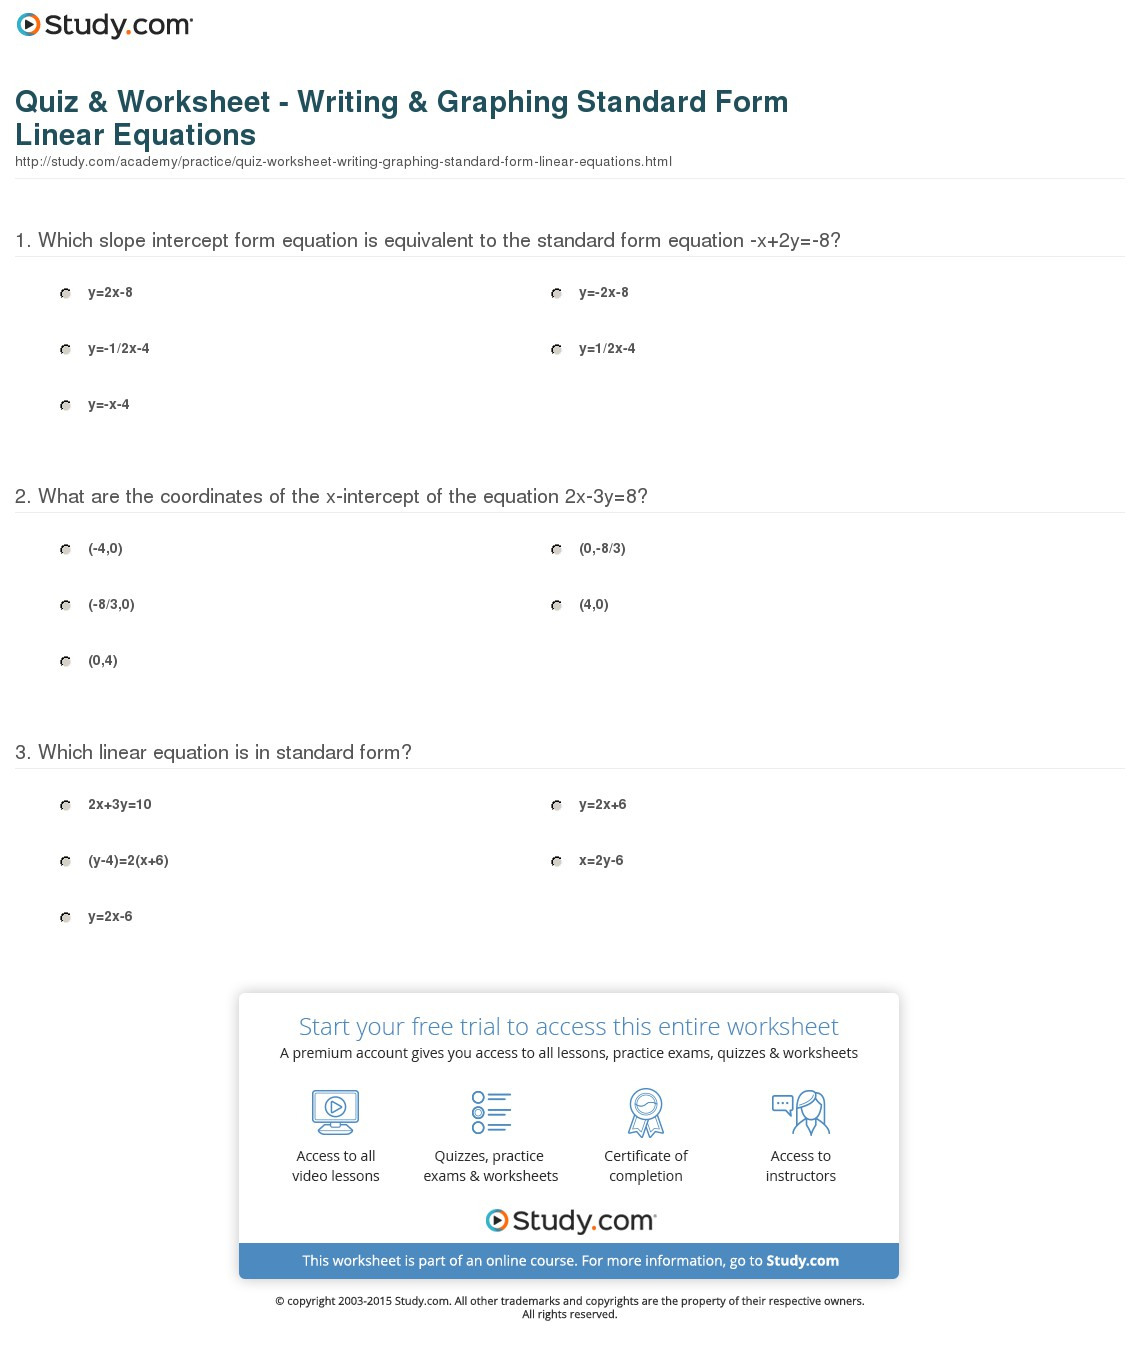 Quiz Worksheet Writing Graphing Standard Form Linear